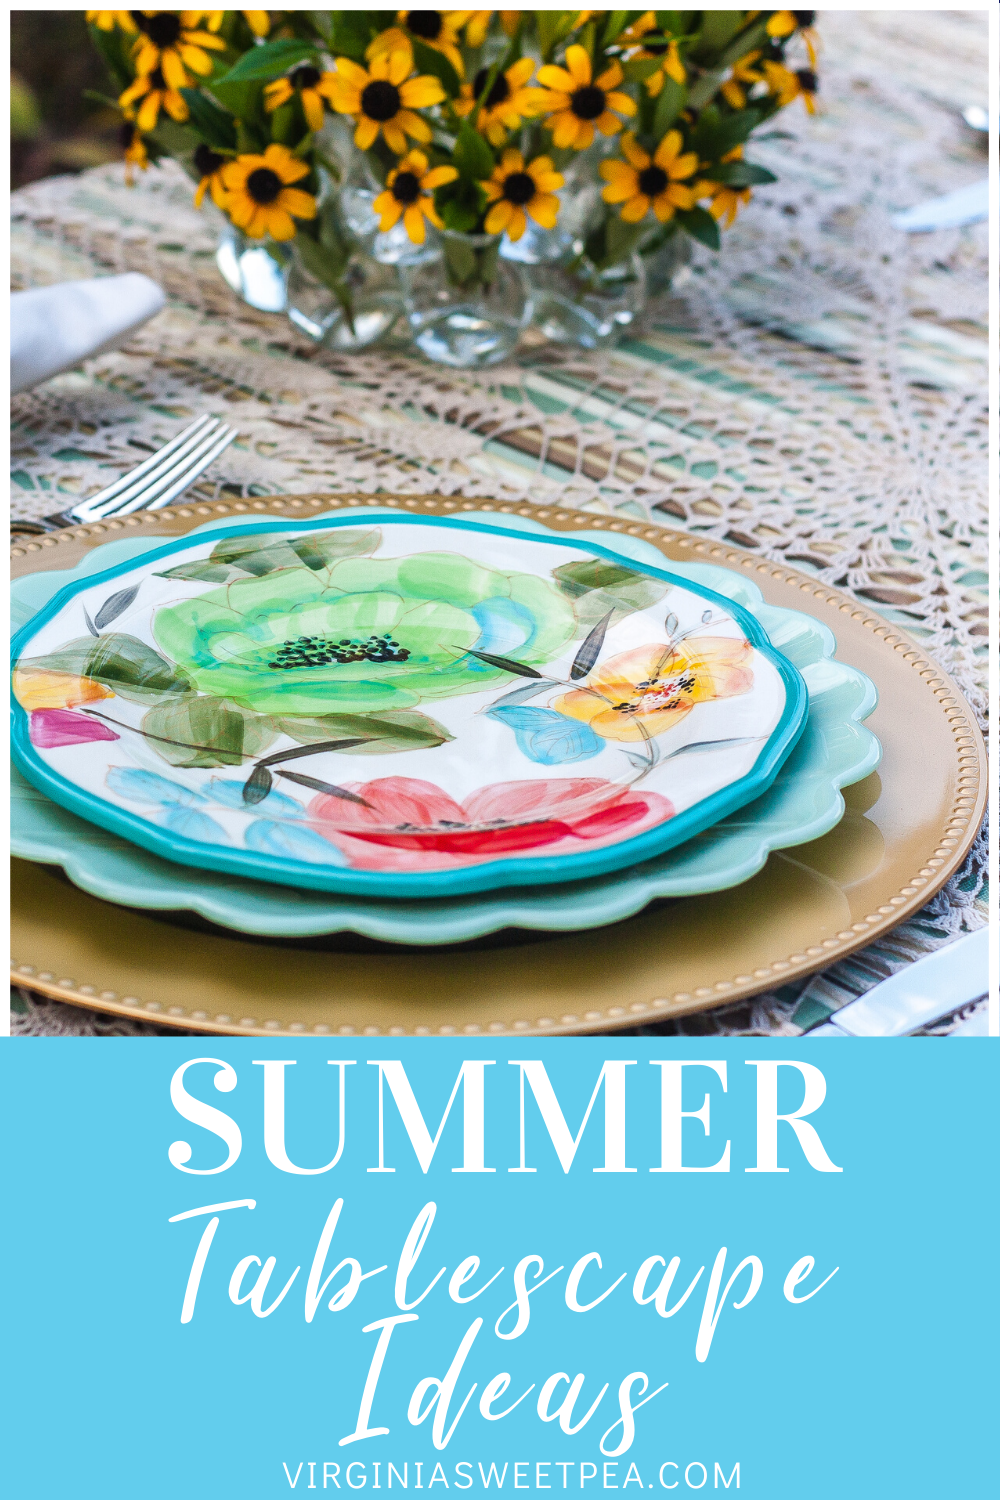 Summer Tablescape Ideas - Get ideas for setting a summer table from 20 home decor bloggers.  You are sure to be inspired for your next dinner party or casual get together.  #summertablescape #summertable  via @spaula